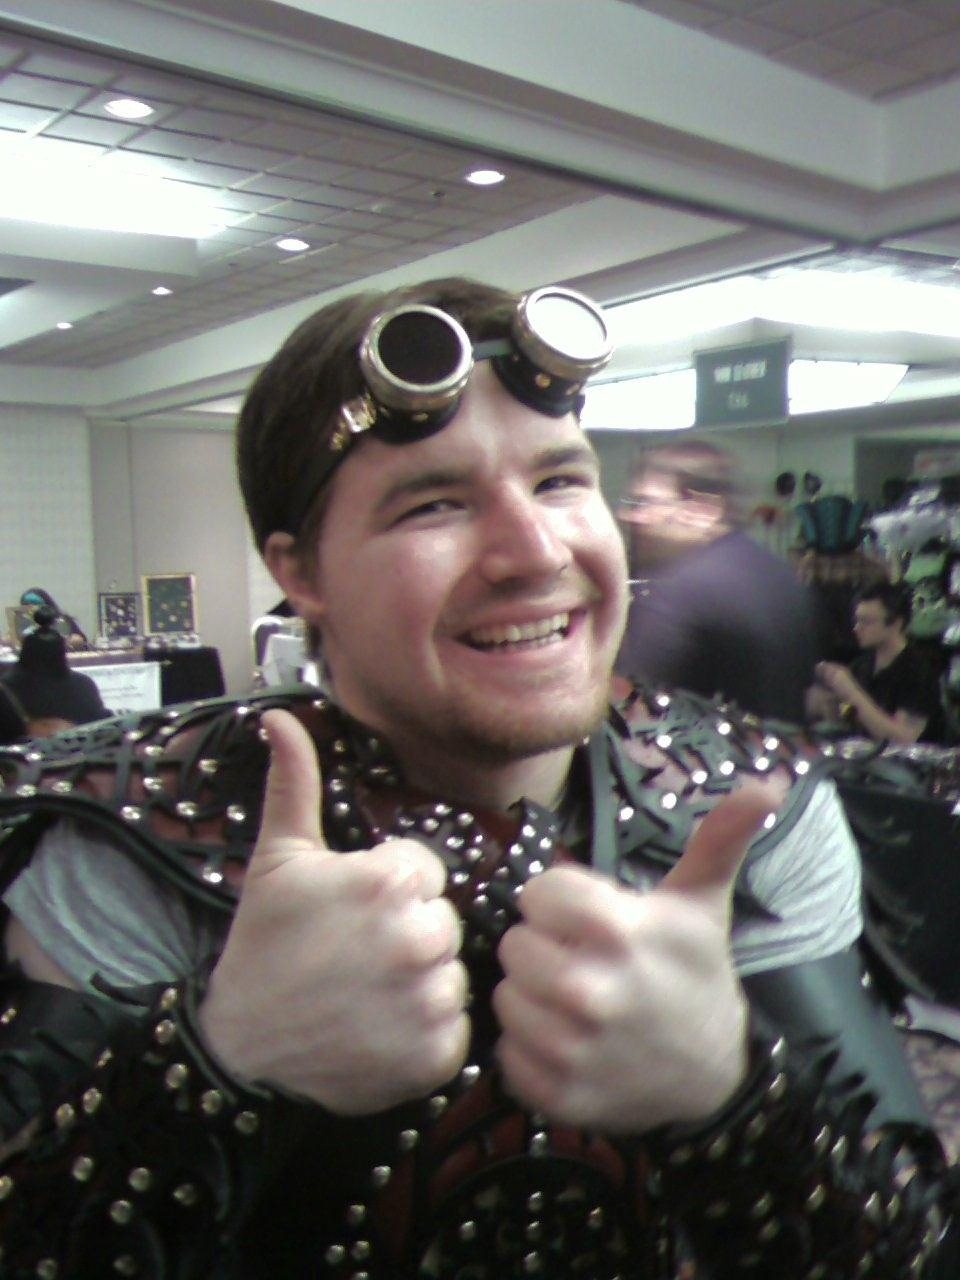 Why Is the Steampunk Community So Fractured and Fractious?